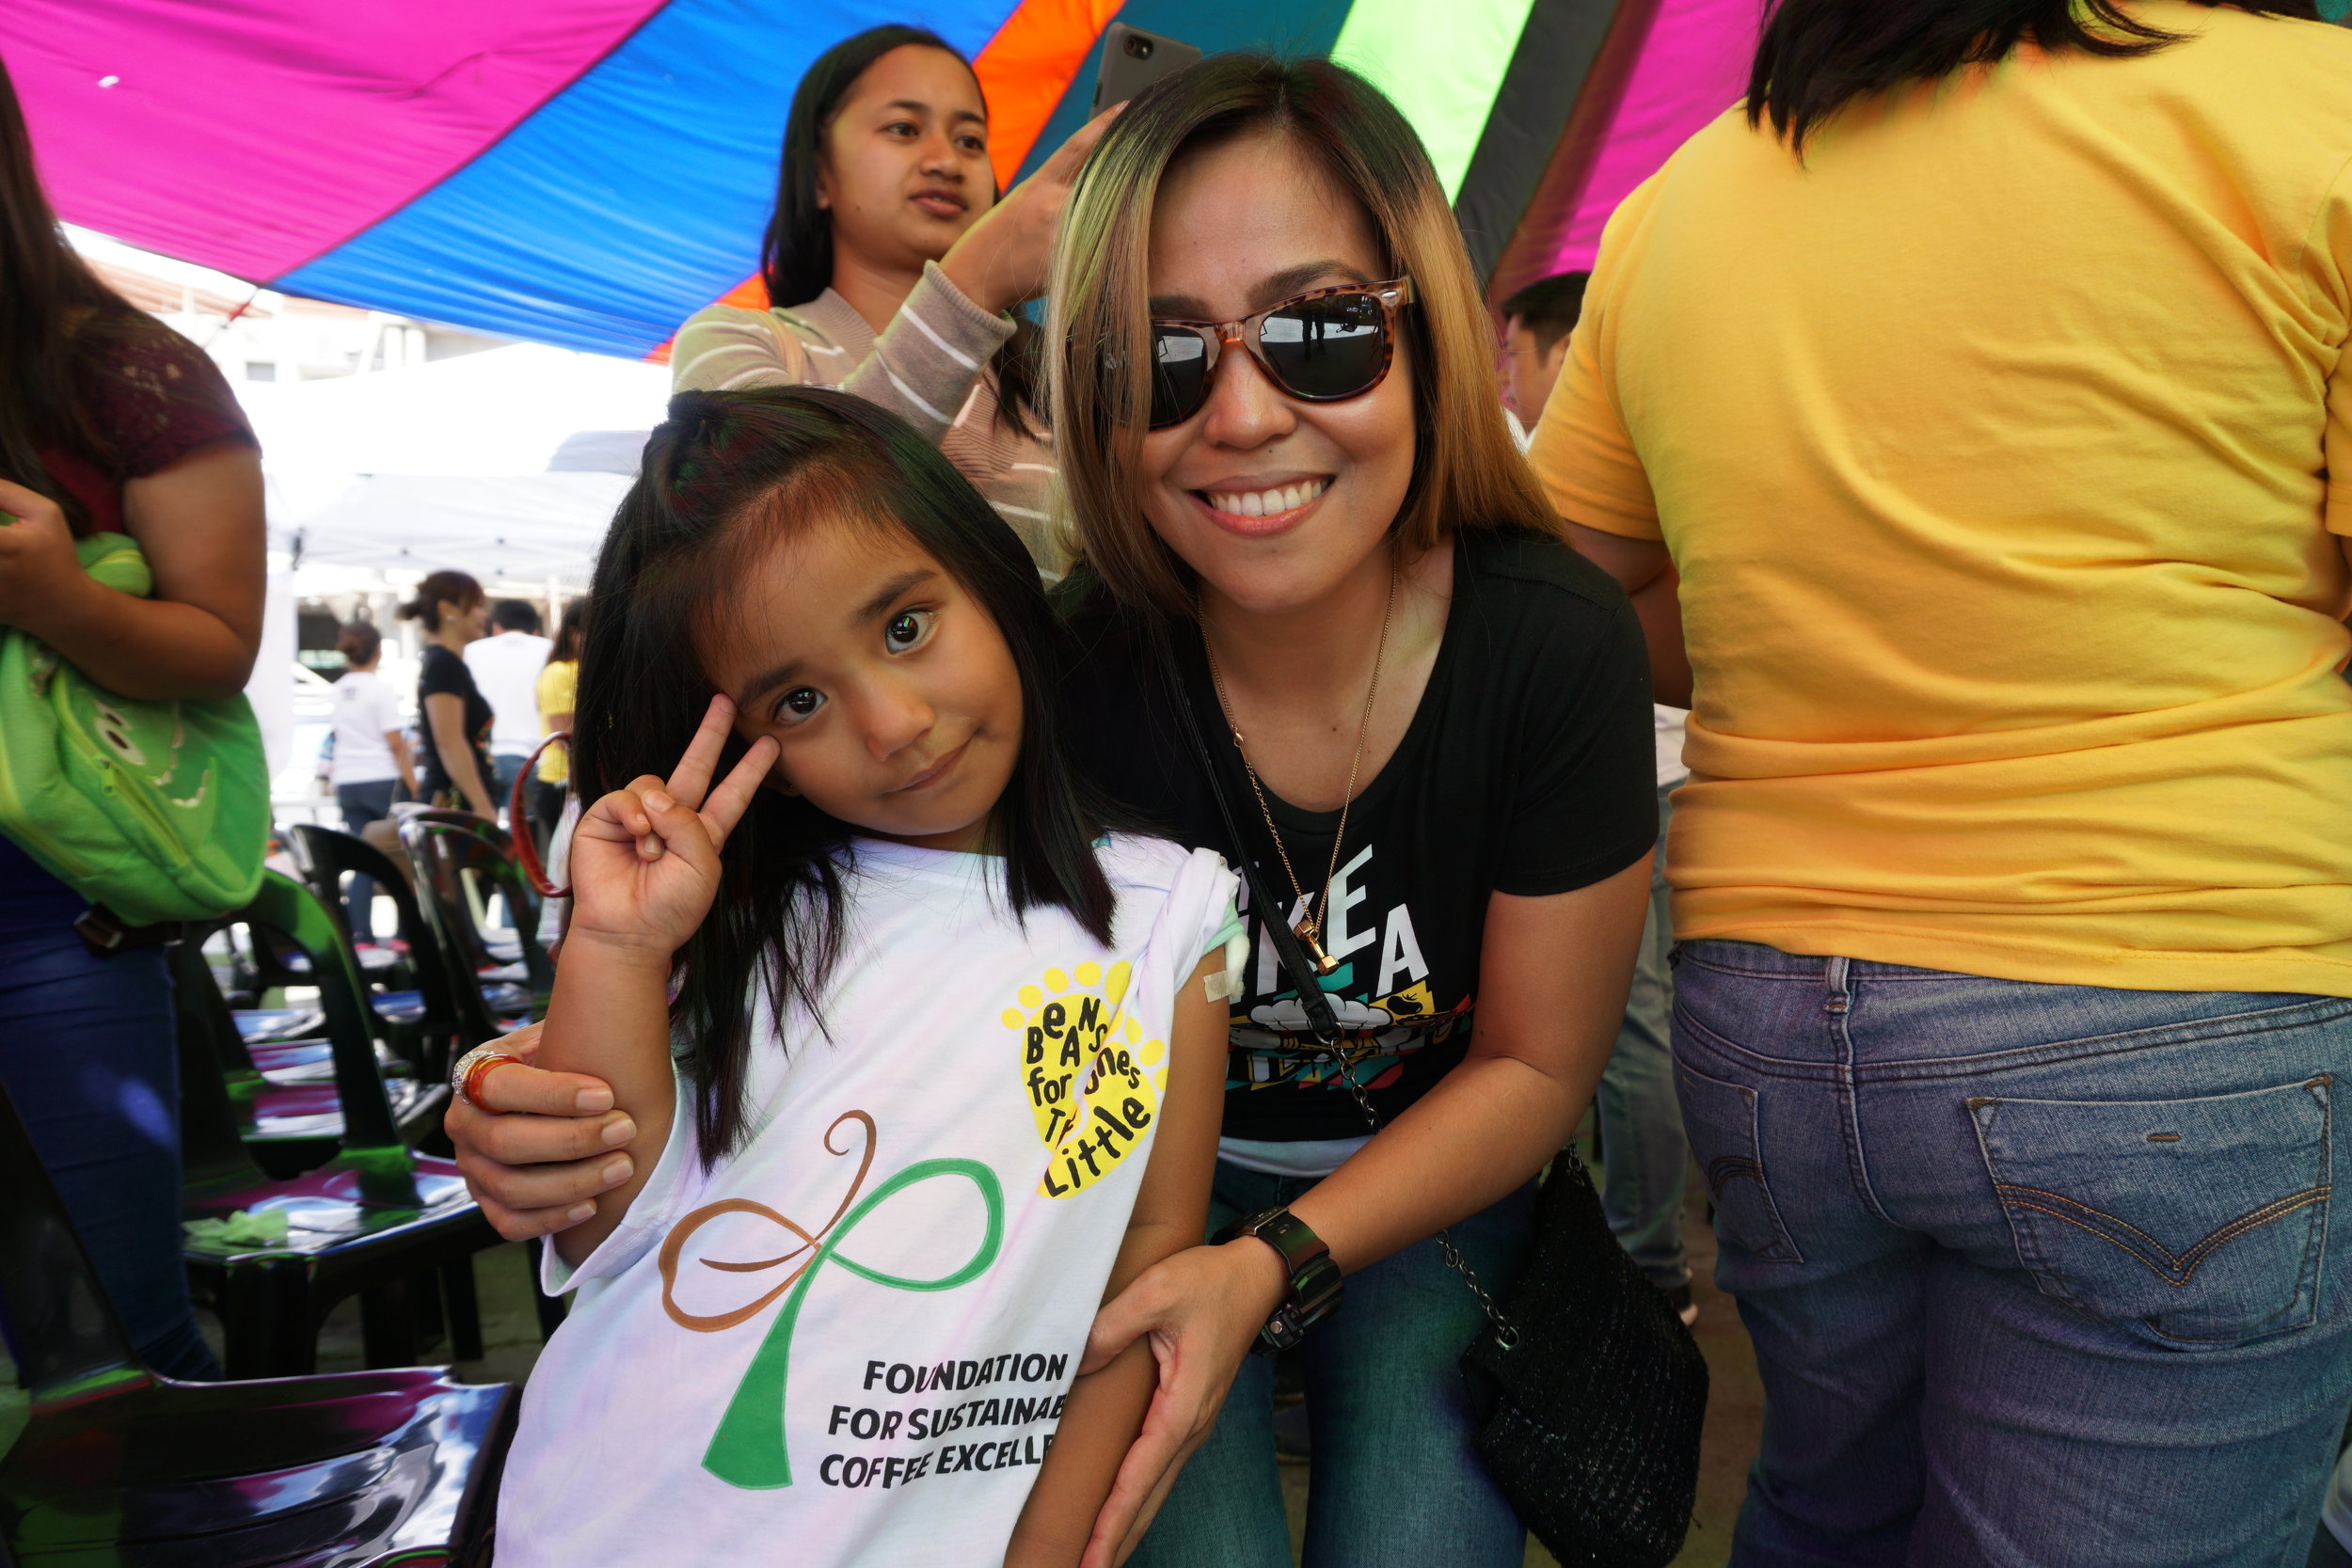 On photo:    Vikings Group Marketing Manager Raquel Bartolome poses with one of the kids